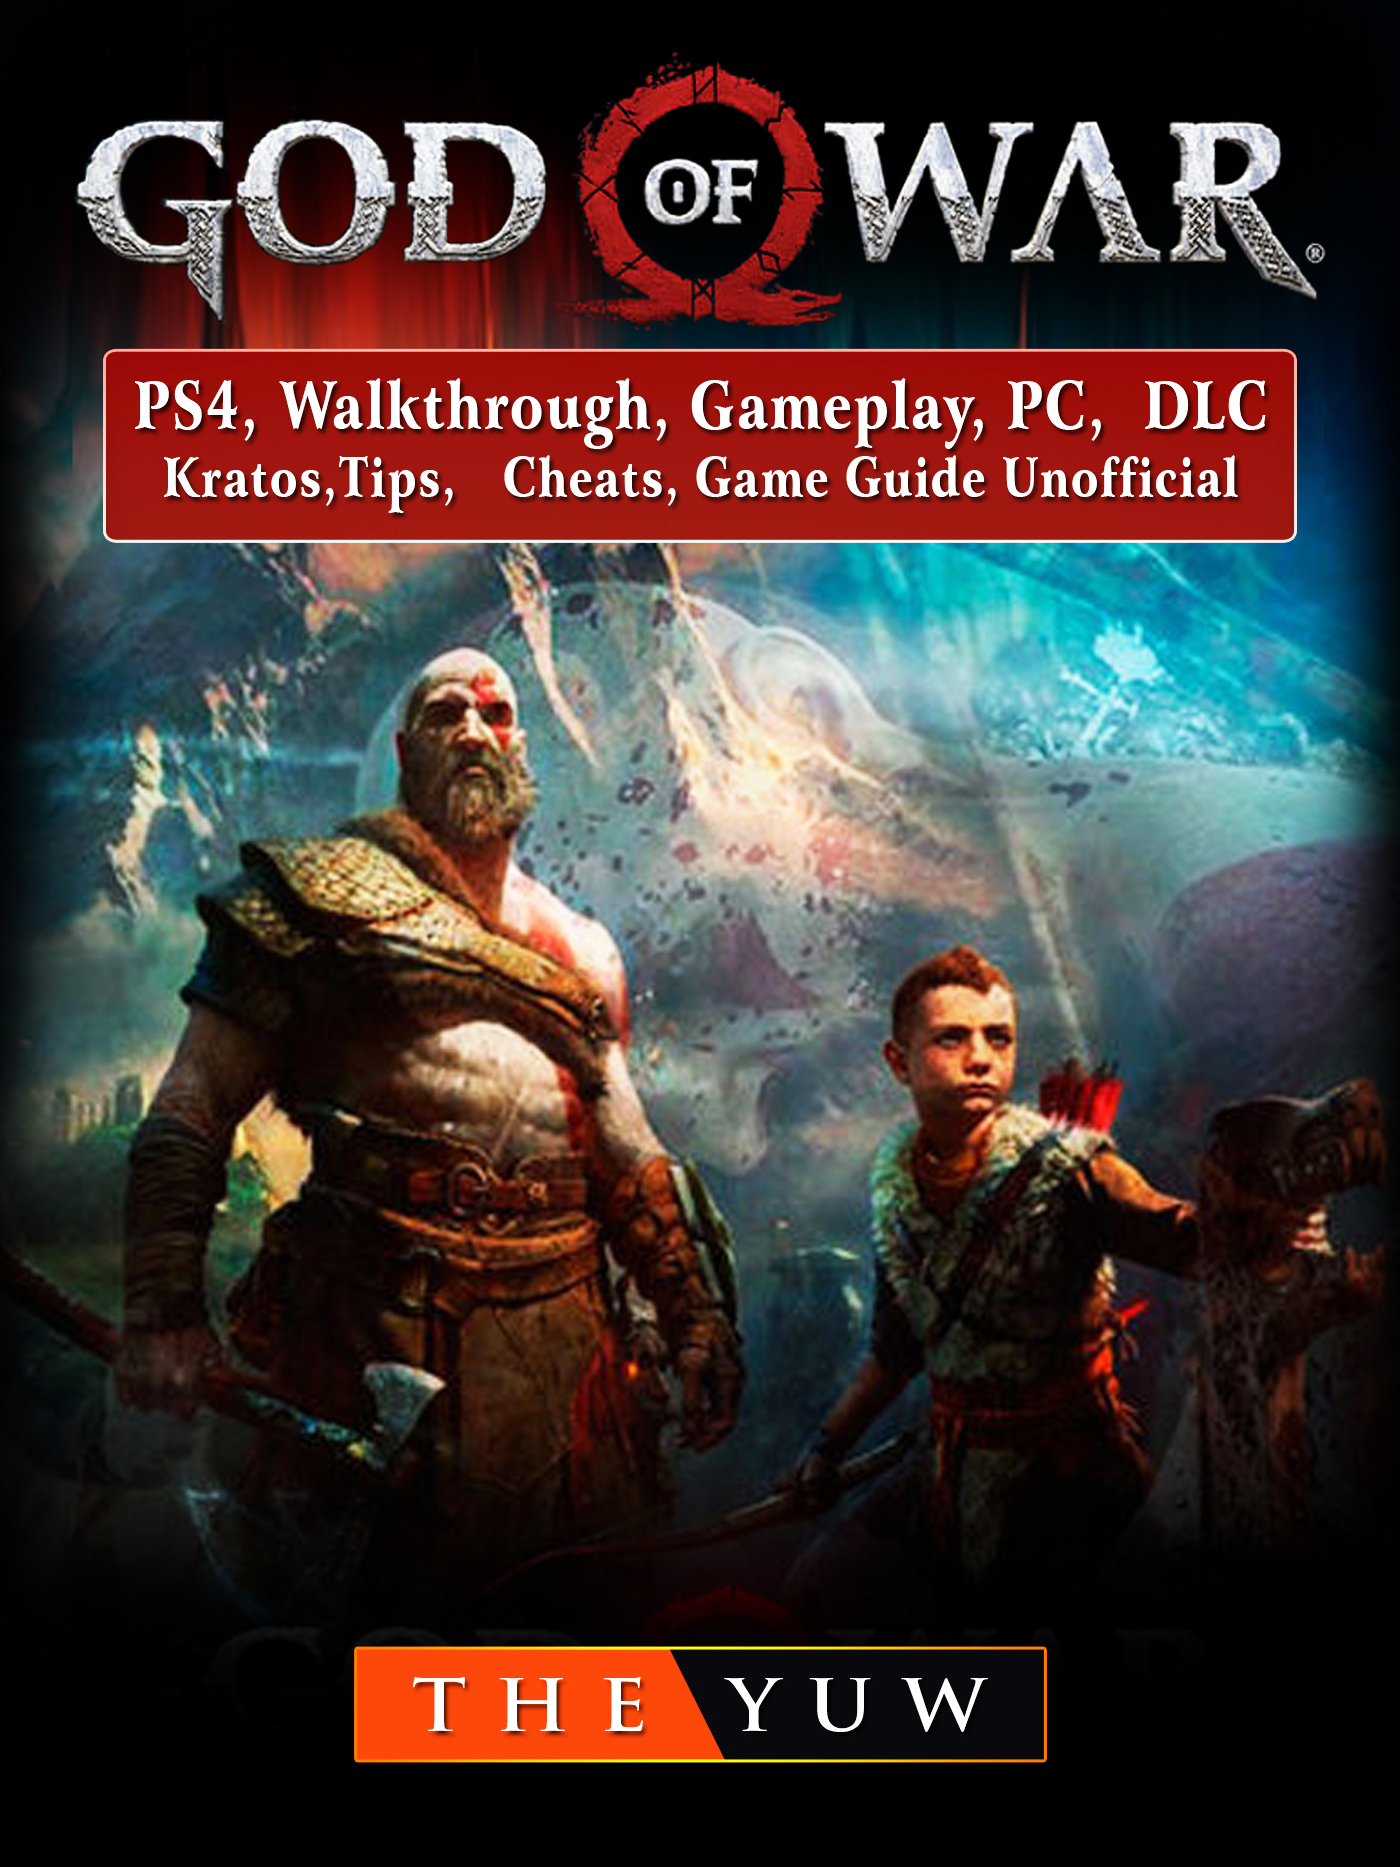 God of War 4, PS4, Walkthrough, Gameplay, PC, DLC, Kratos, Tips, Cheats, Game Guide Unofficial By The Yuw